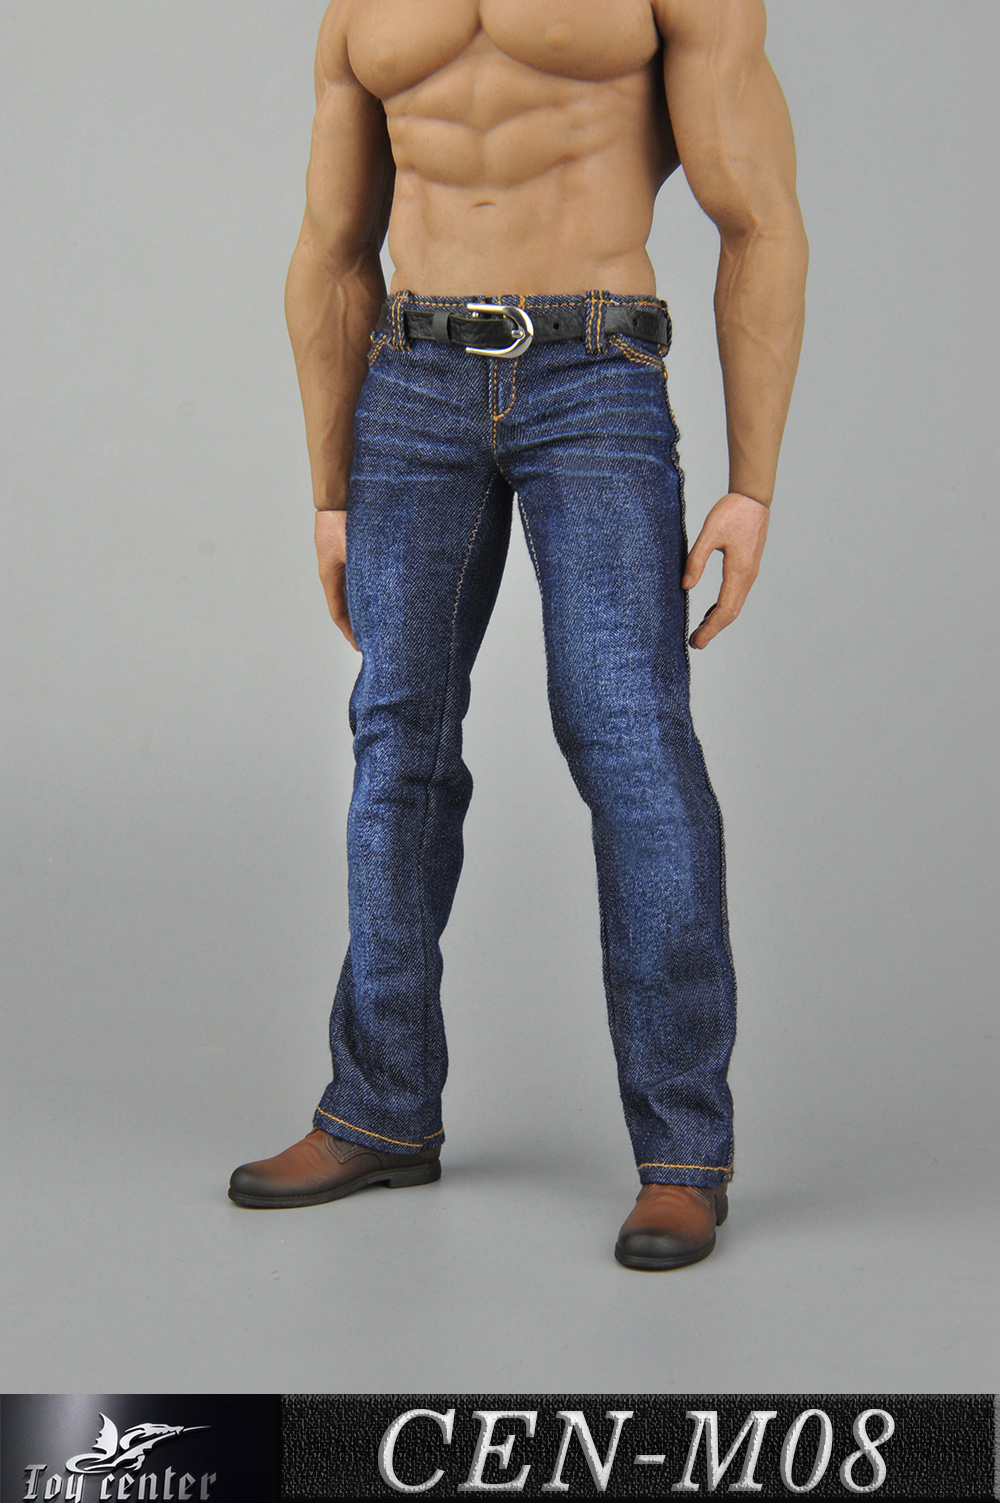 NEW PRODUCT: Toy Center: 1/6 Sports Vest Jeans Set - Three Colors A/B/C 13424010